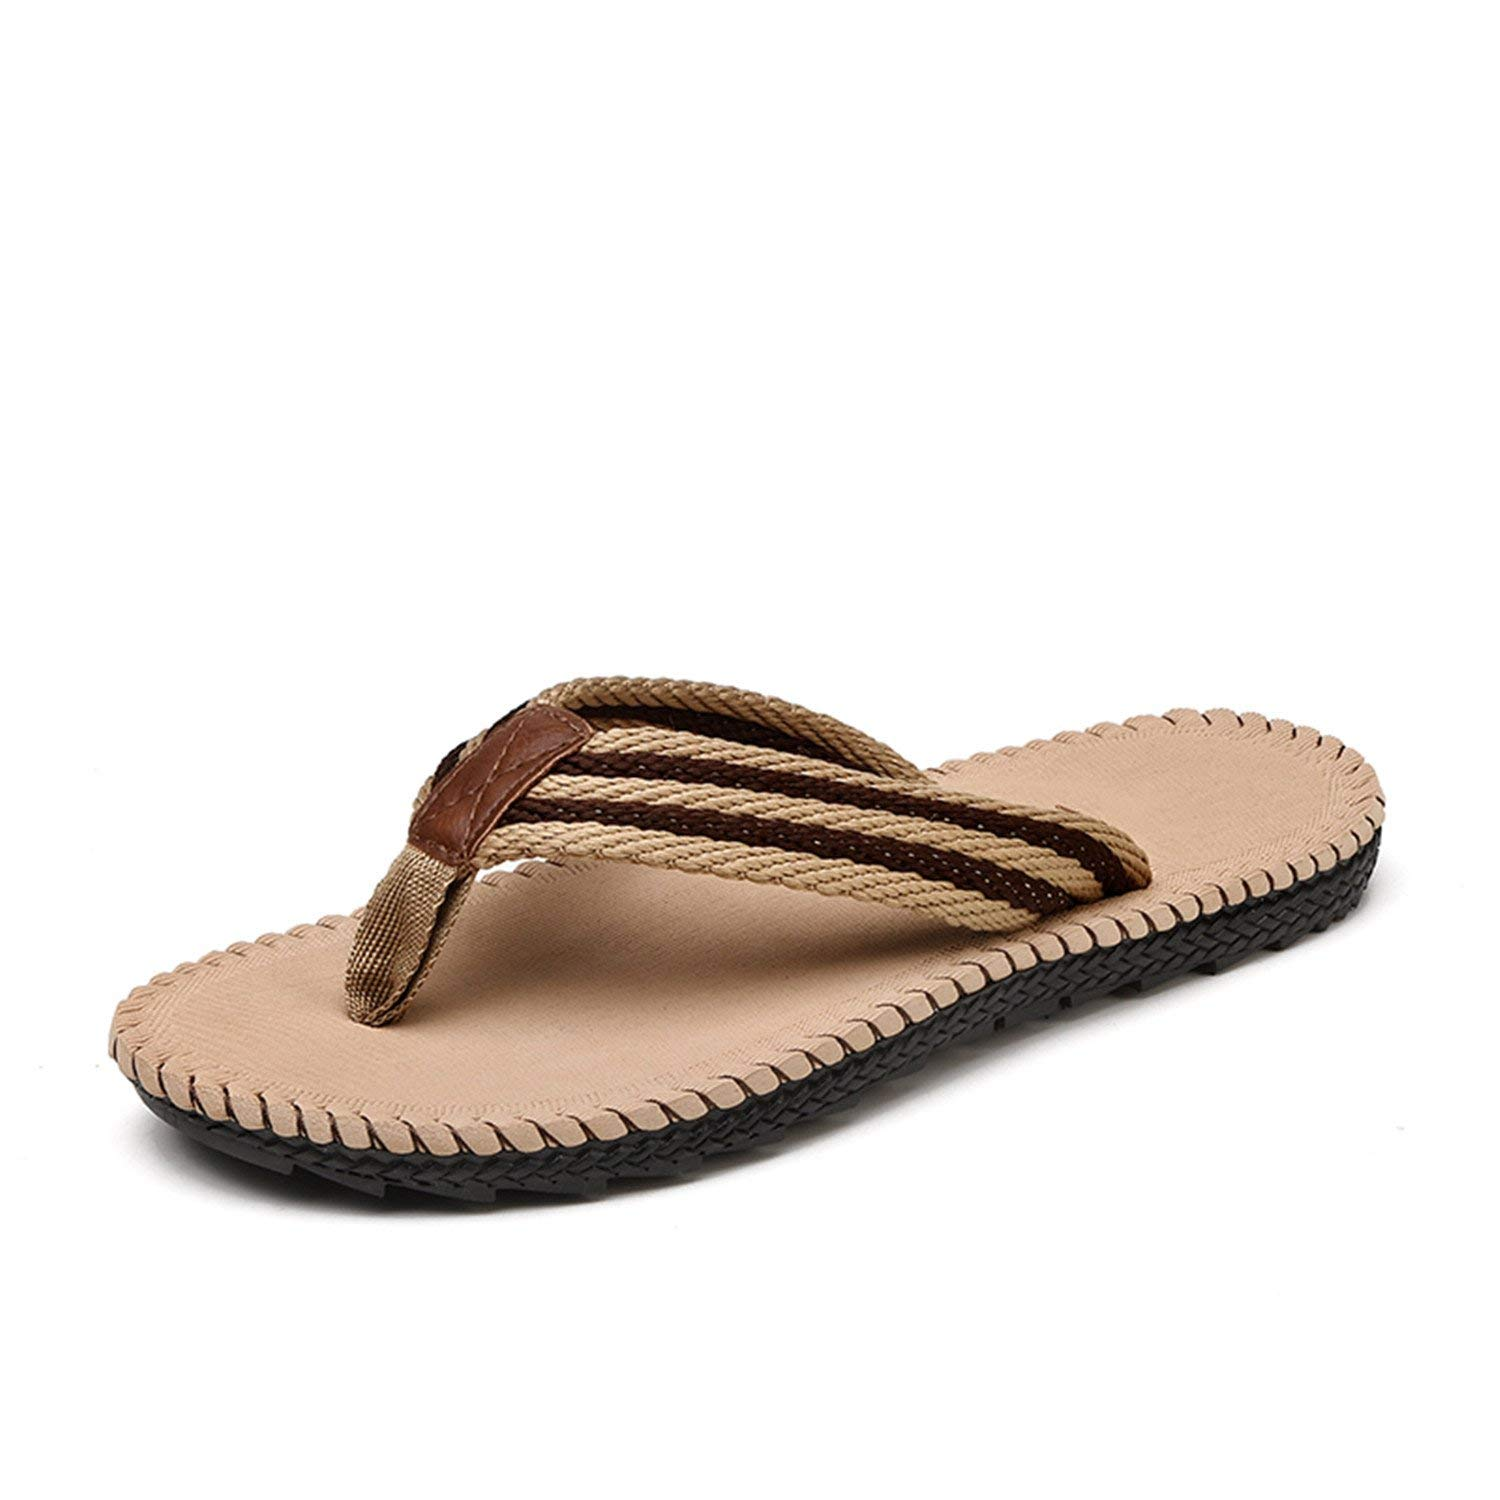 Marvin Cook Summer Cool Men Slippers Sandals Beach Slippers Comfortable Flip Flops Shoes Plus Size 45